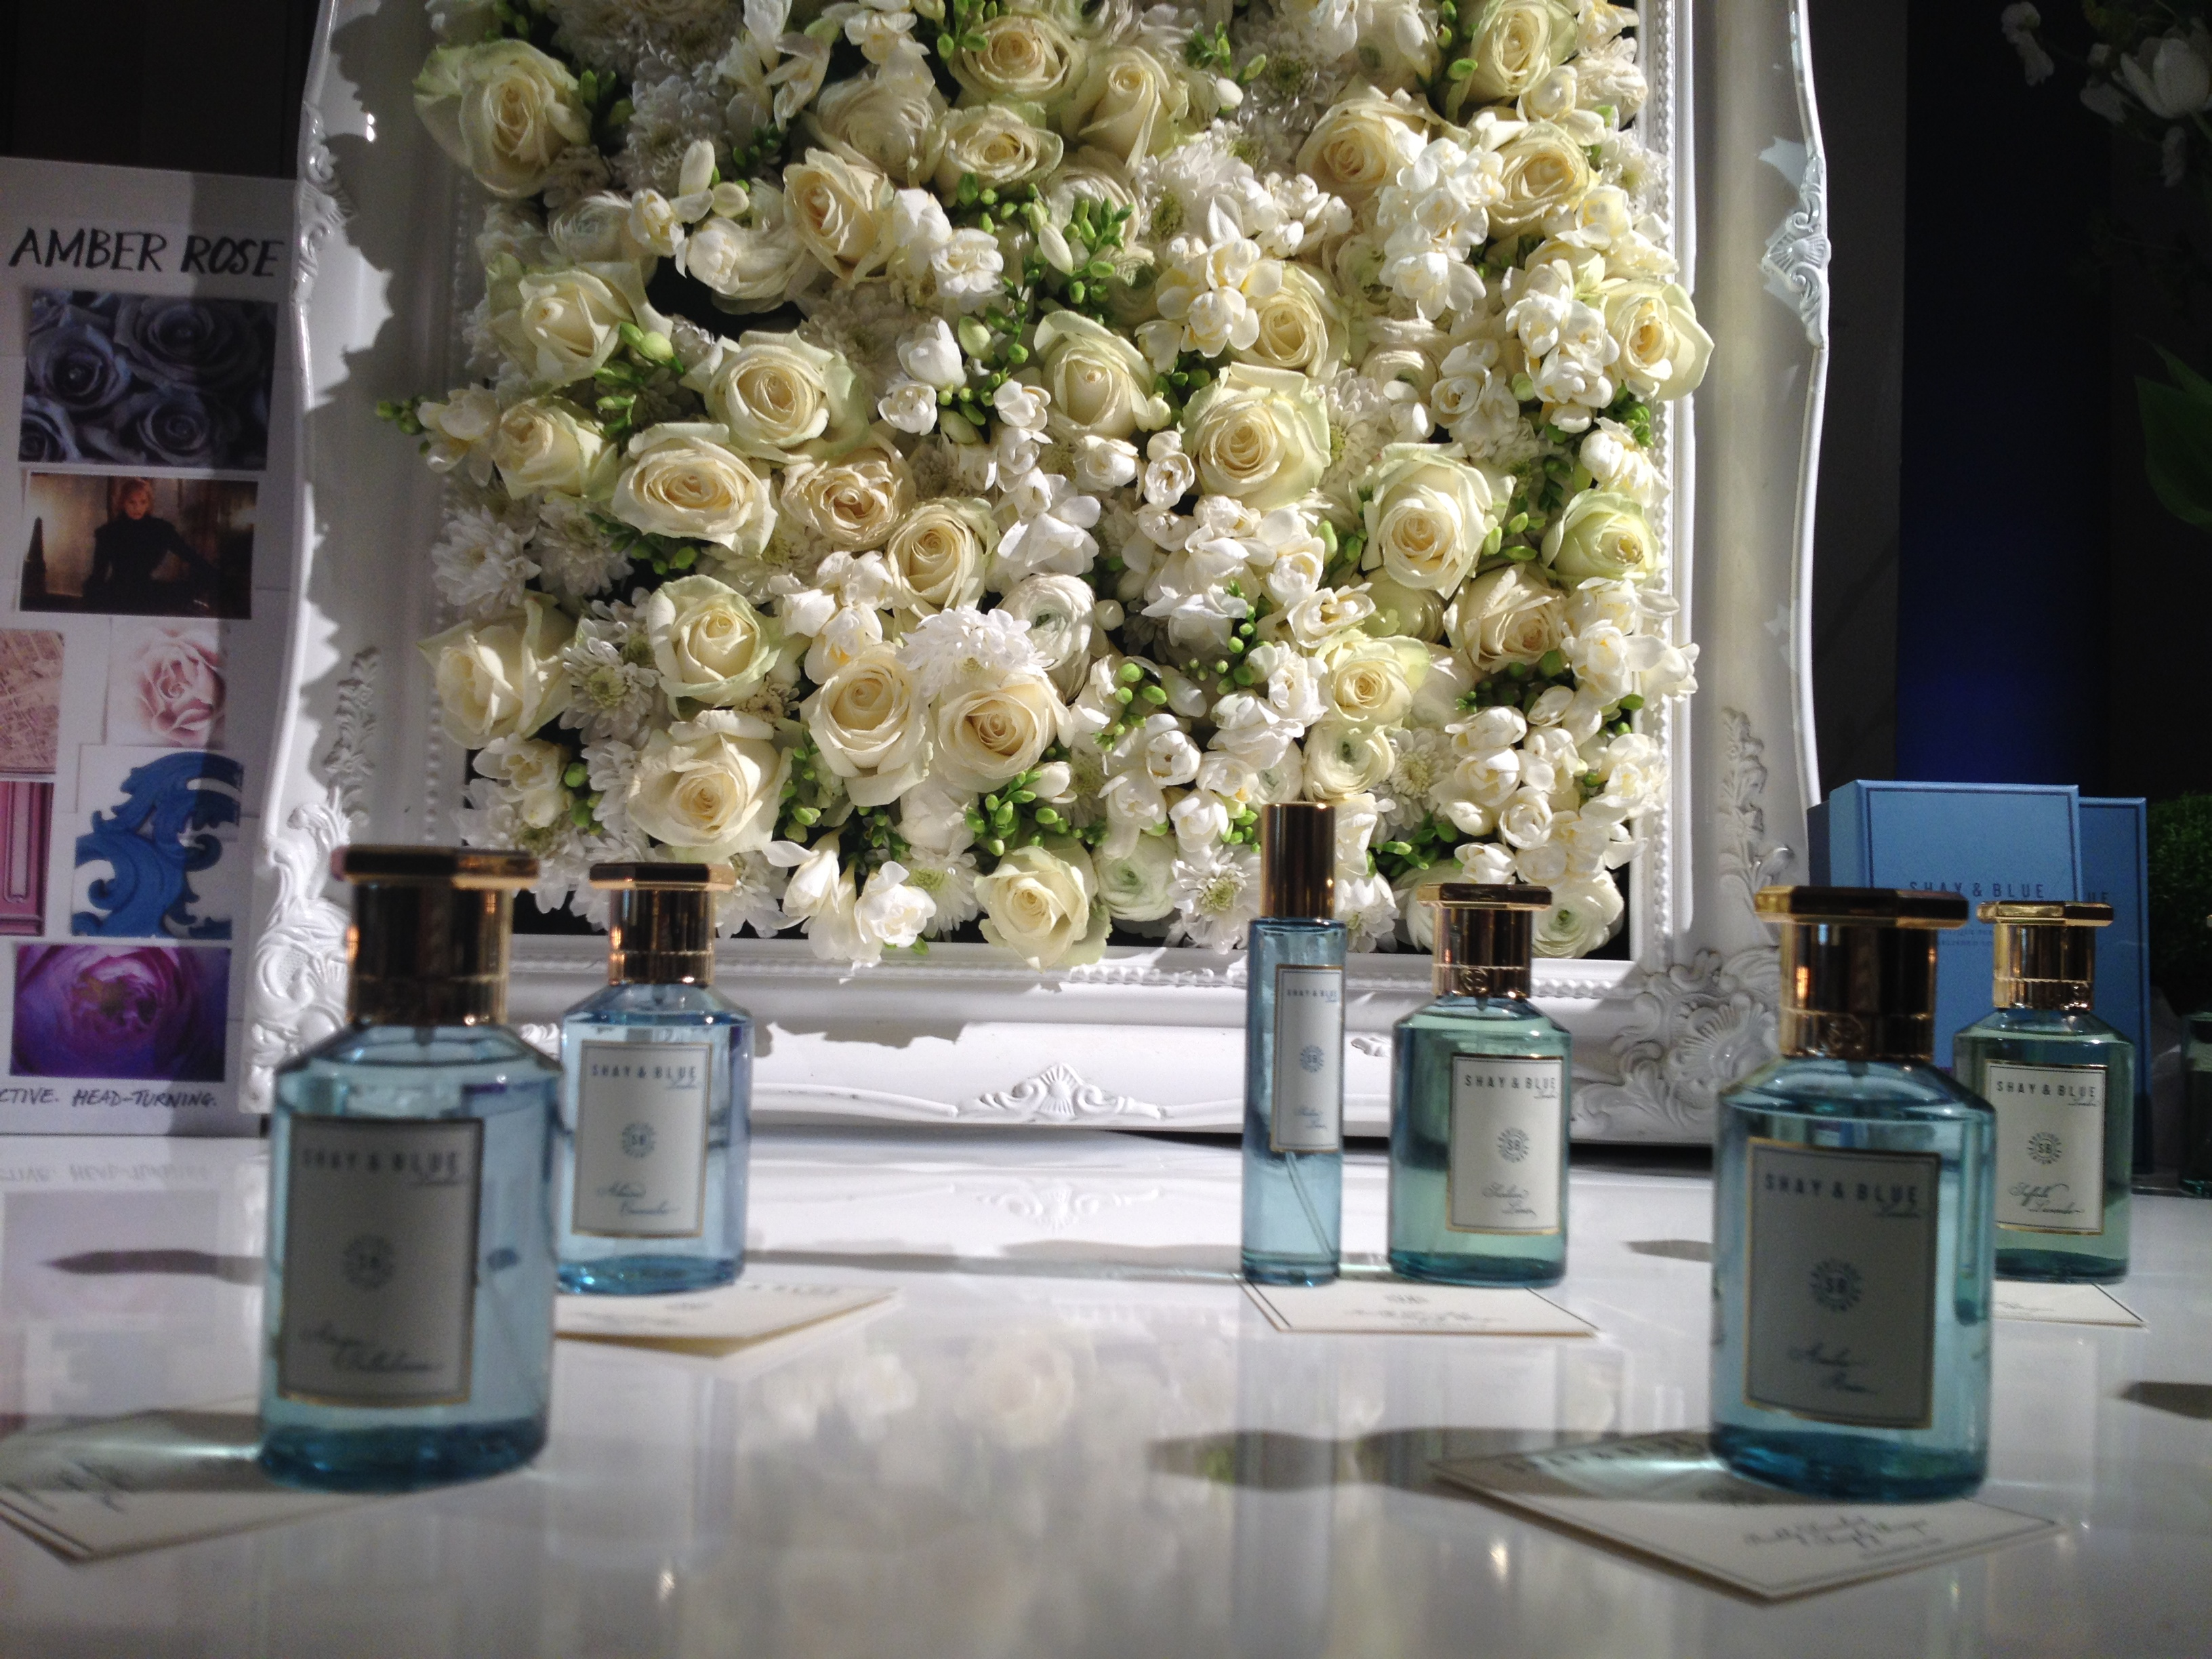 Marks and spencer silk flowers gallery flower decoration ideas marks and spencer silk flowers images flower decoration ideas marks and spencer silk flowers image collections izmirmasajfo